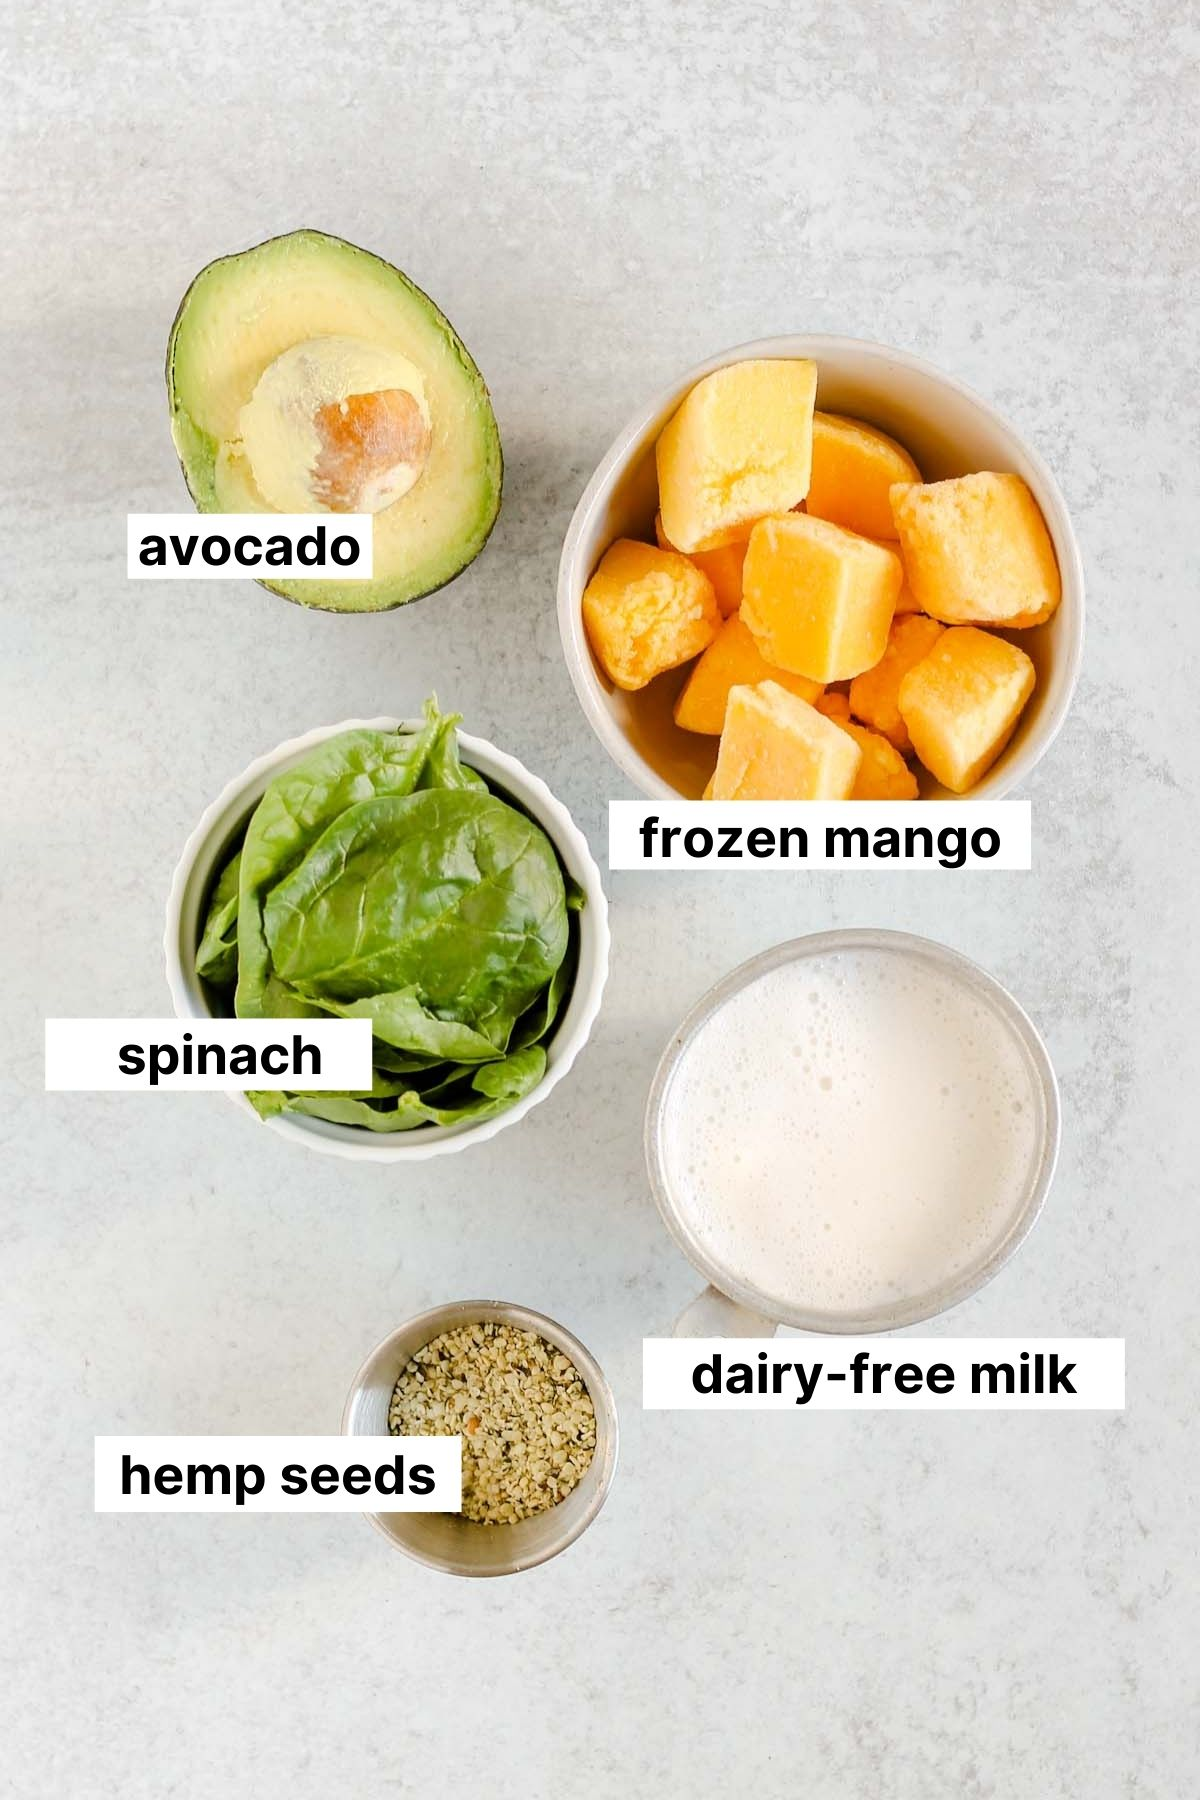 Labeled ingredients for mango spinach smoothie.